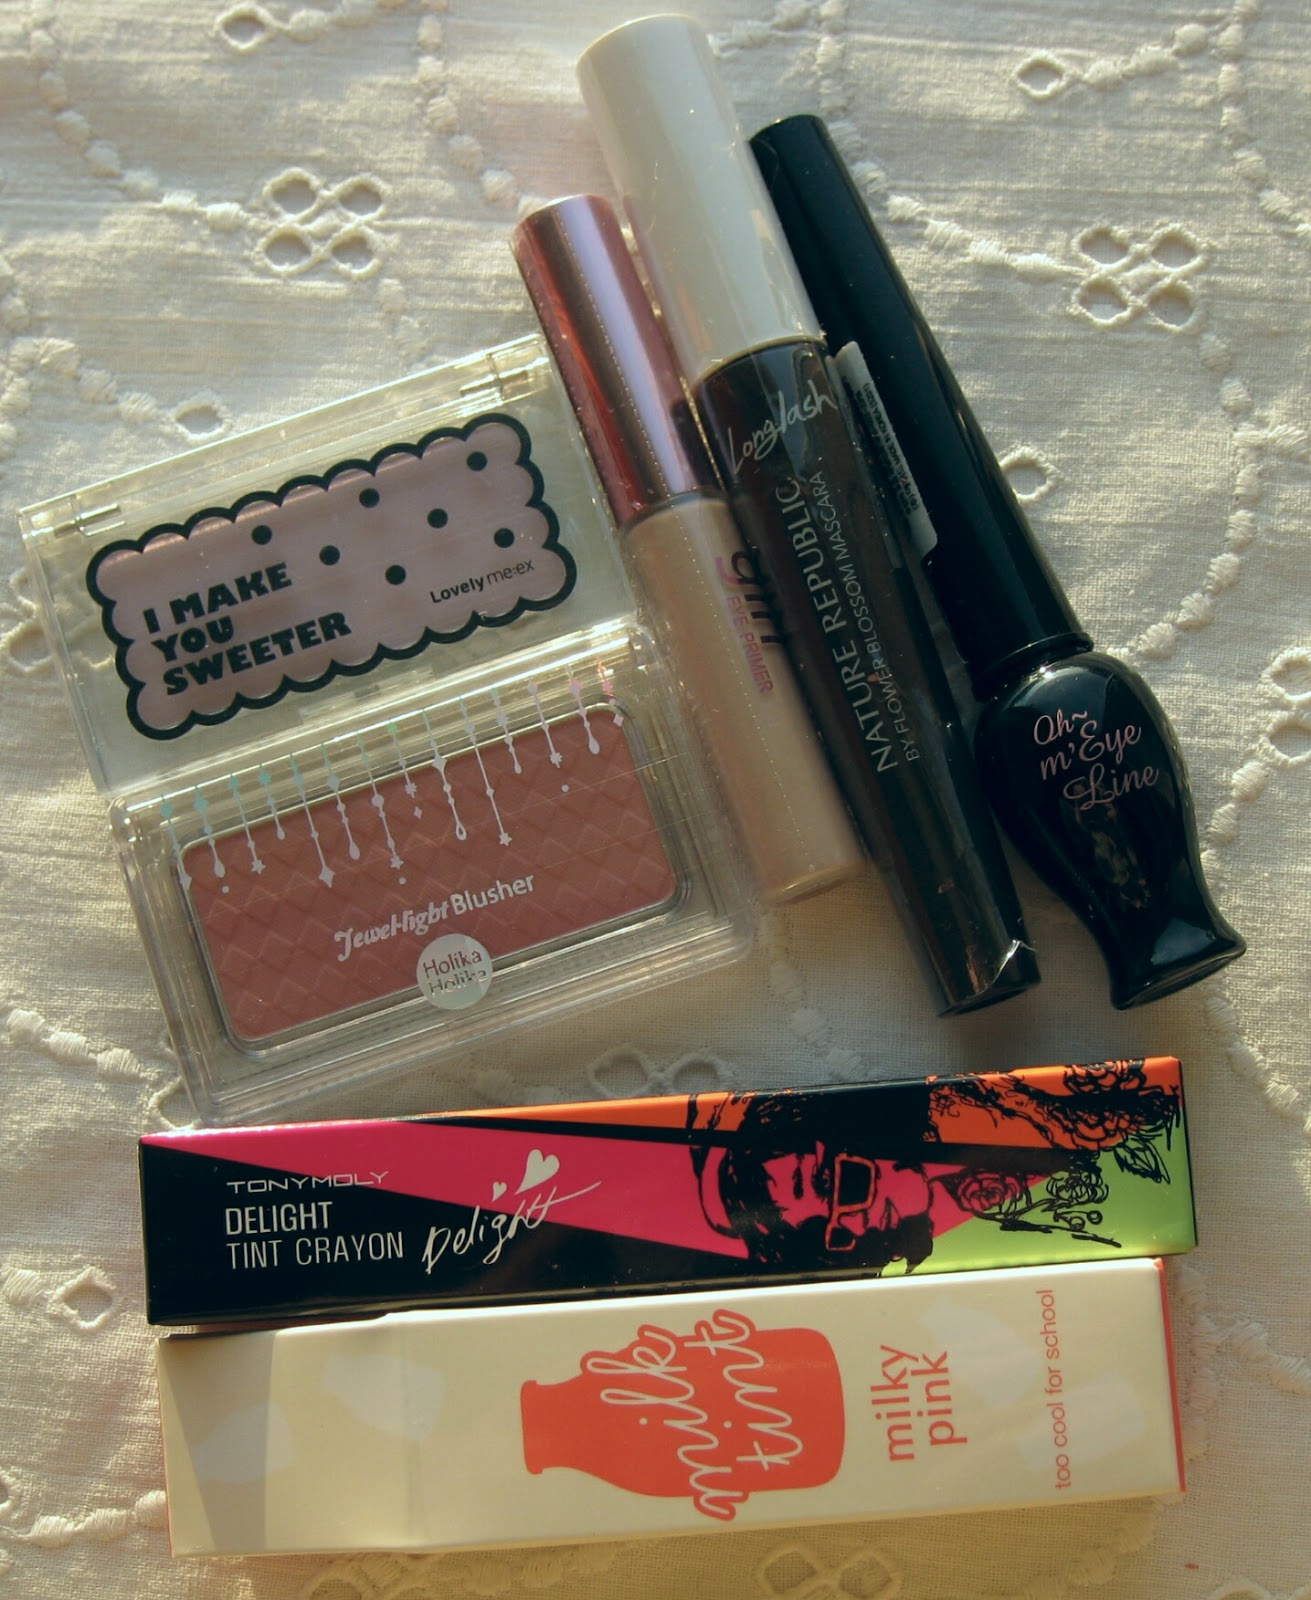 TONYMOLY Delight Tint Crayon, ETUDE HOUSE Oh my line eyeliner, HOLIKAHOLIKA Jewel light Blusher